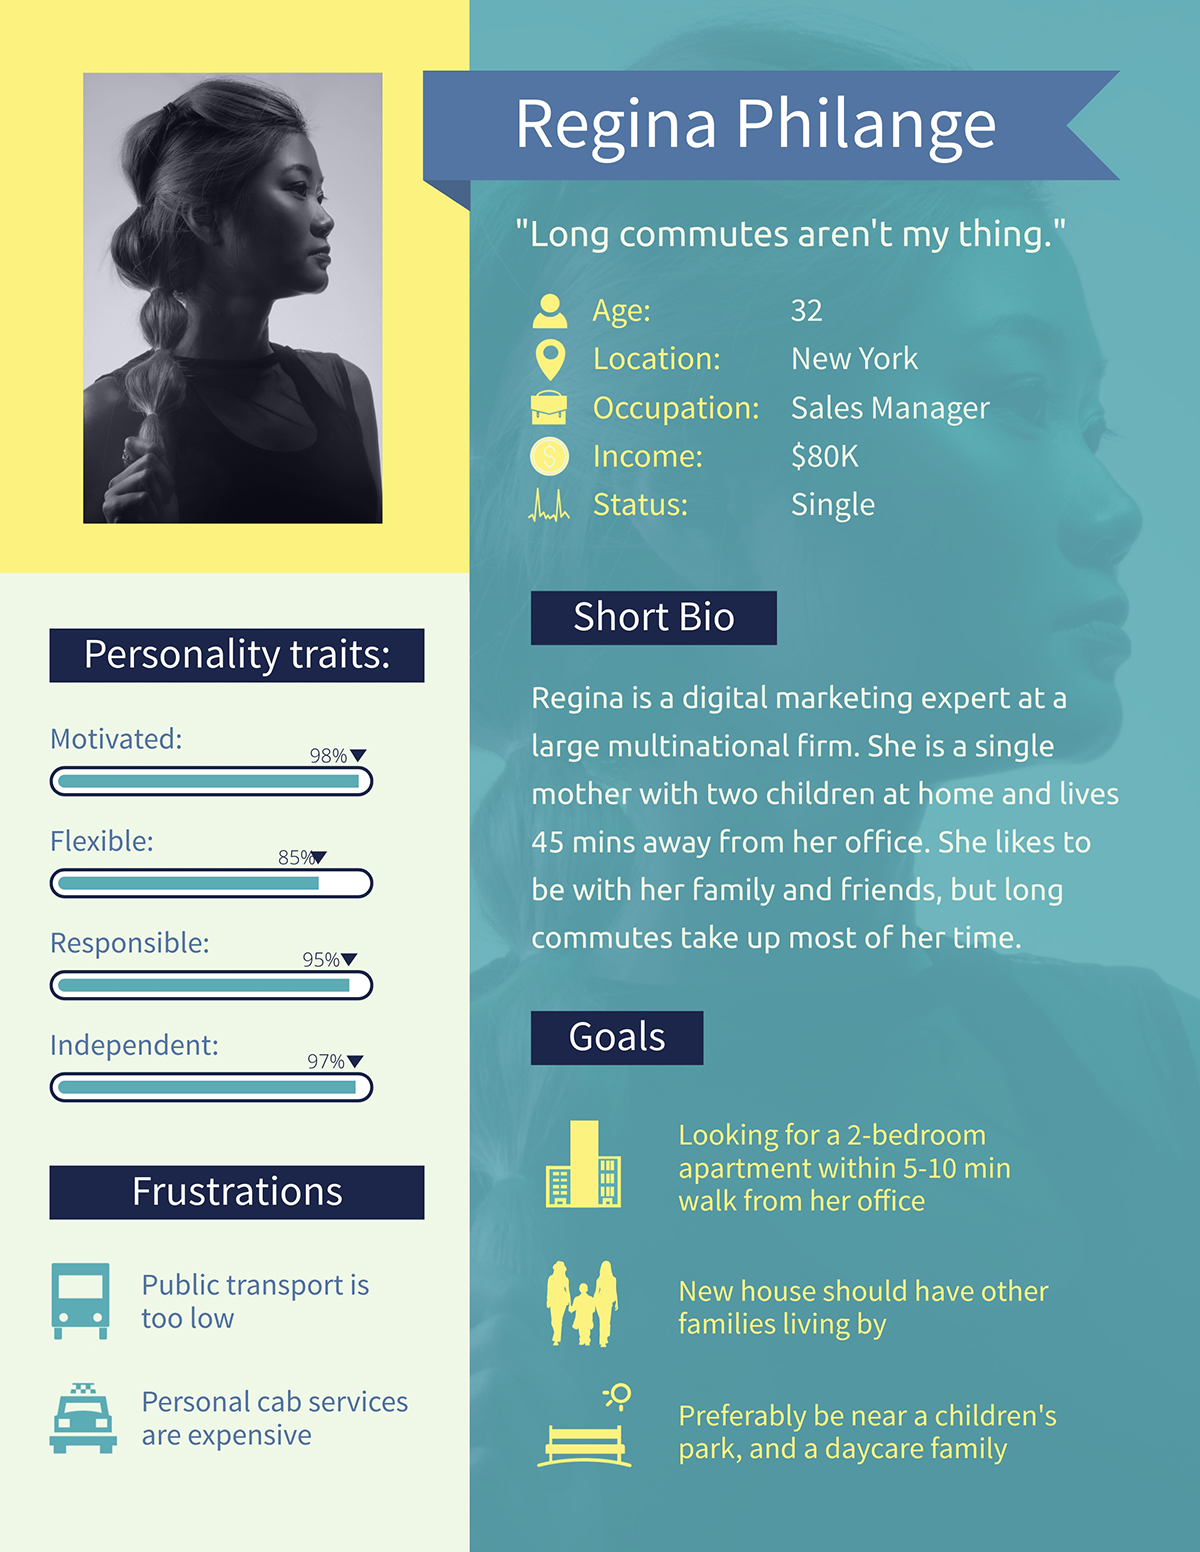 A customer persona resume infographic template available in Visme.